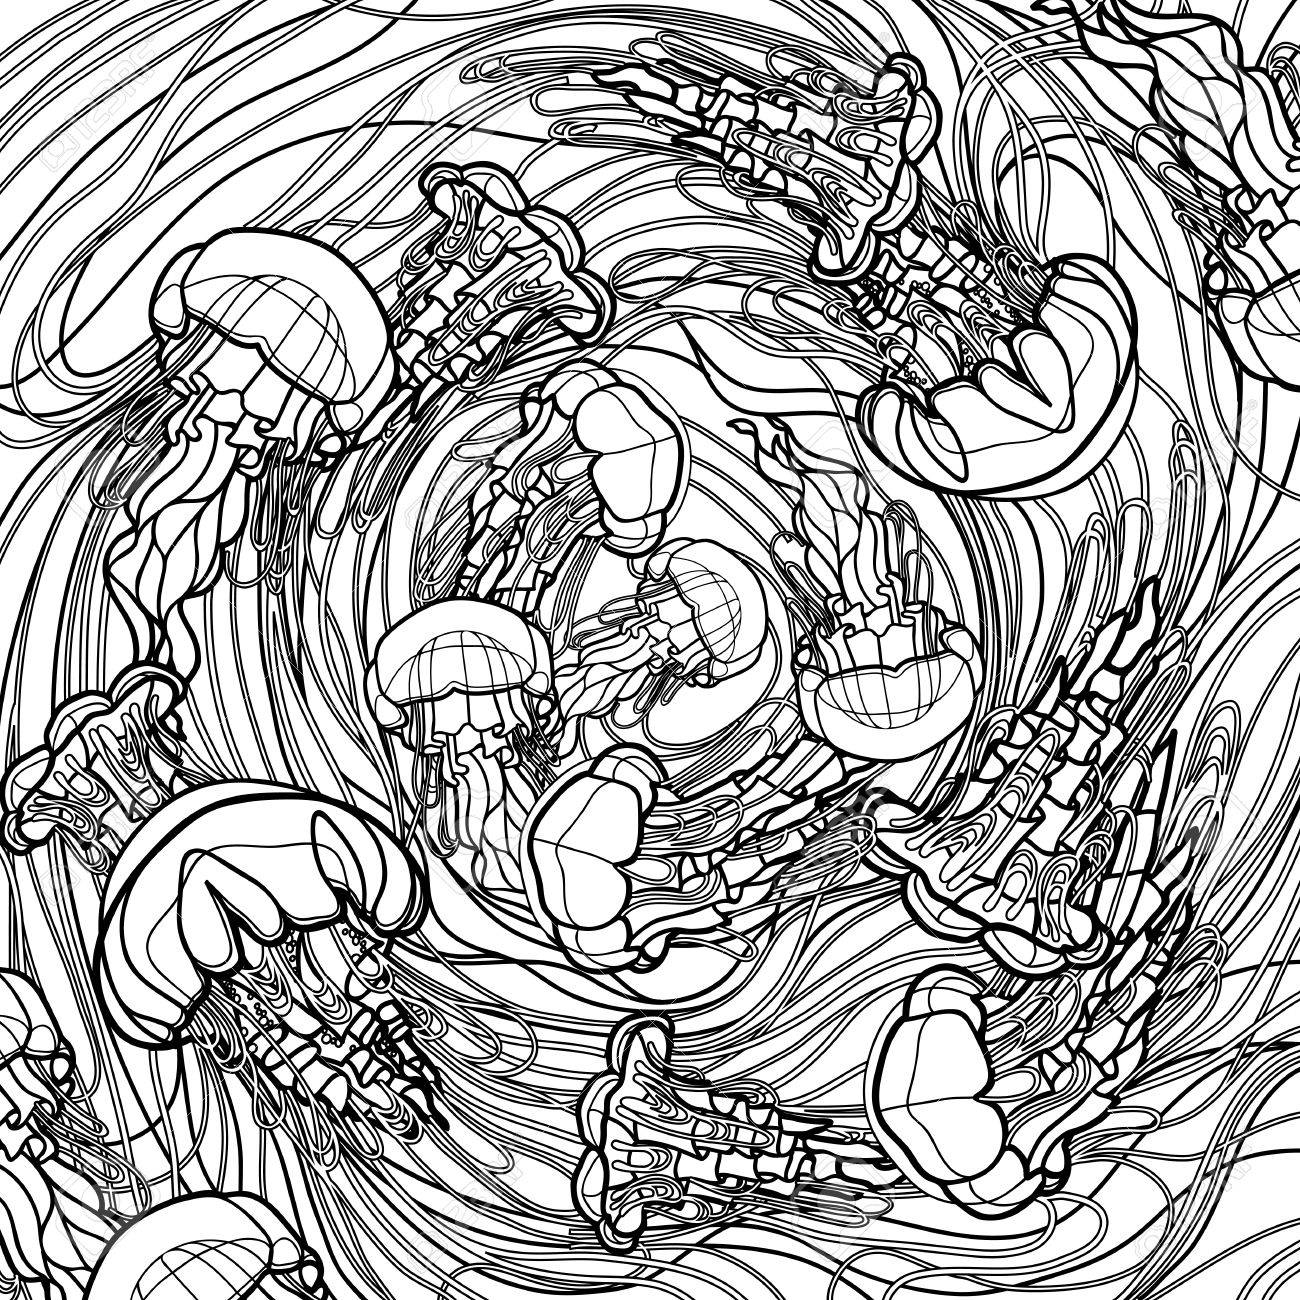 Coloring Book Page Design Swirl Of Jellyfish Drawn In Line Art Style Ocean Card Black And White Colors